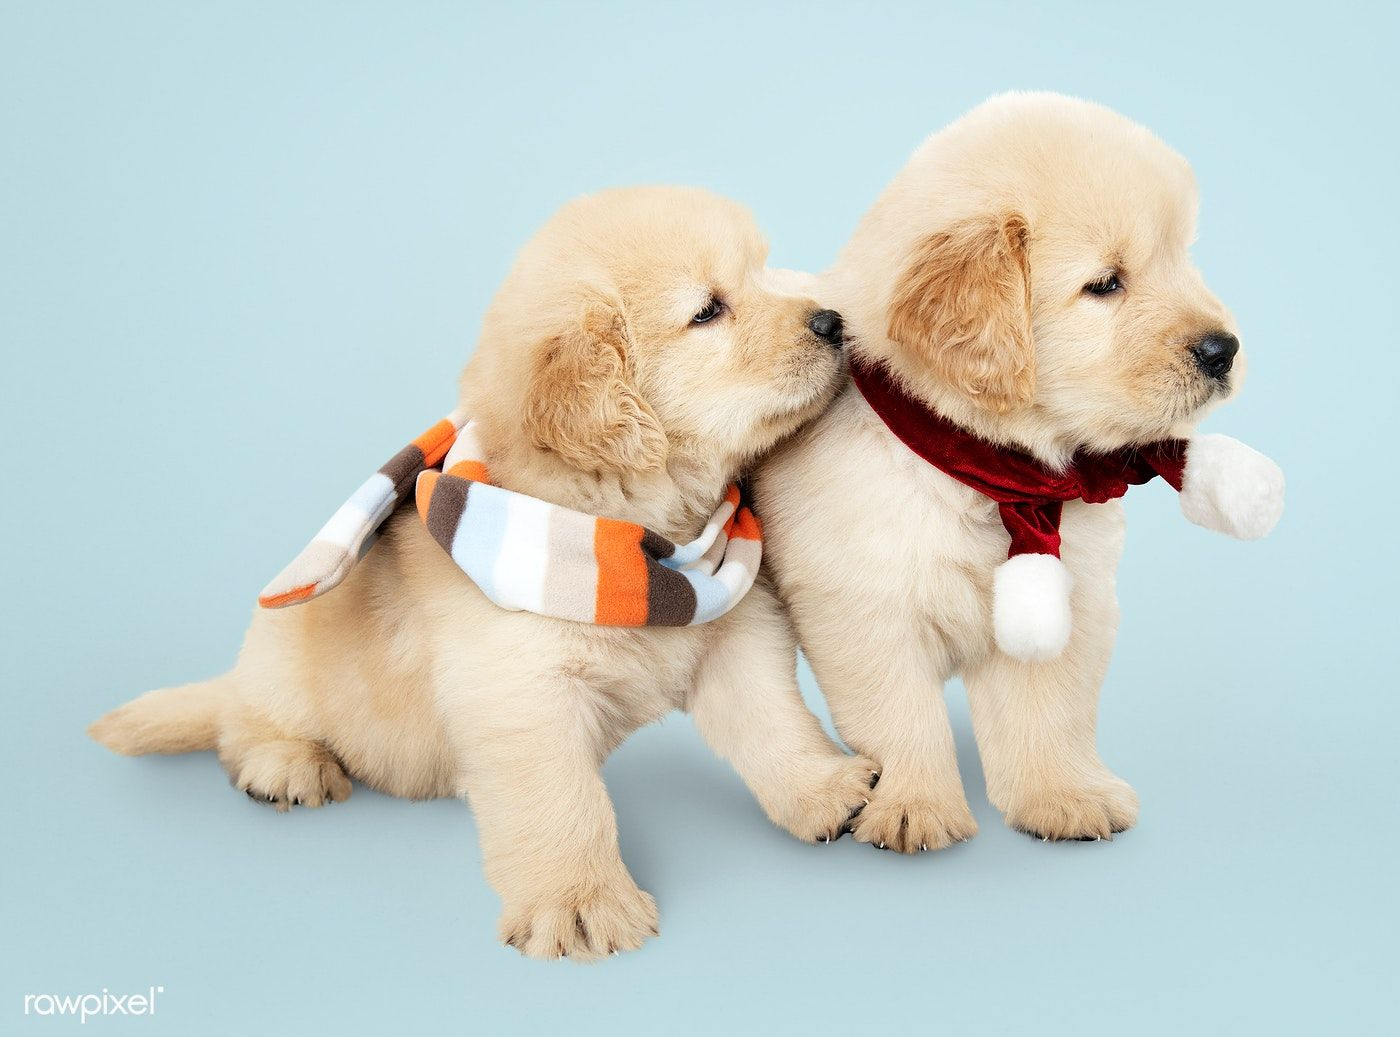 Download Premium Image Of Two Golden Retriever Puppies Wearing